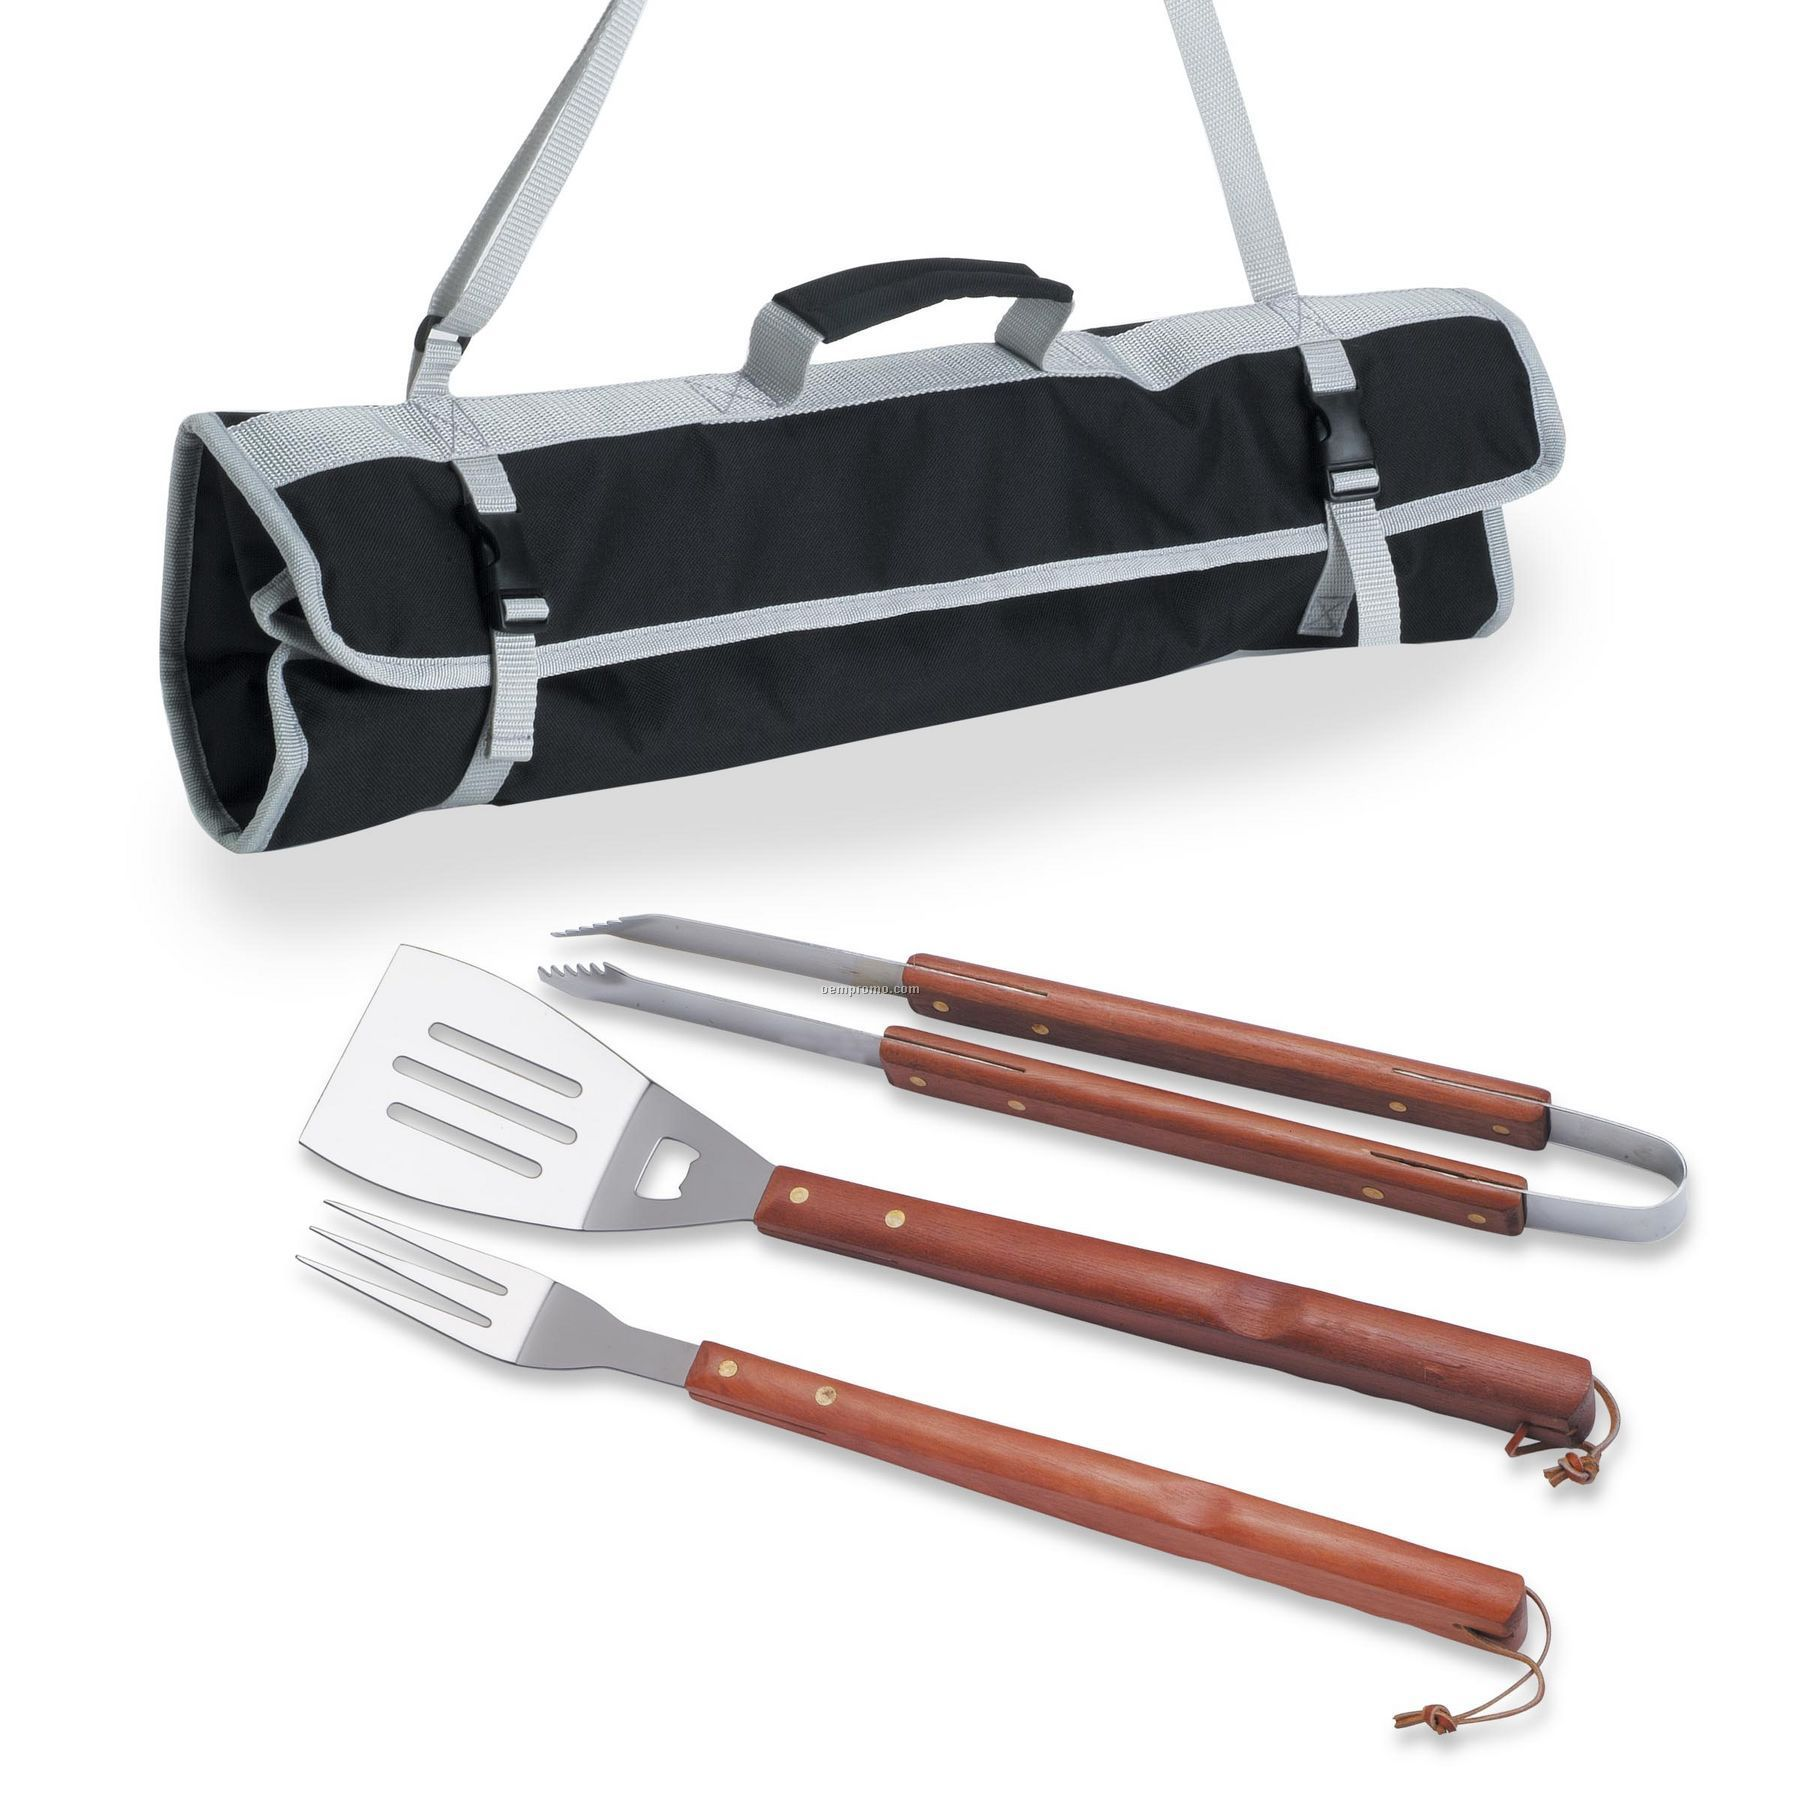 3 Piece Barbecue Tool Set W/ Folding Easy-carry Tote Bag